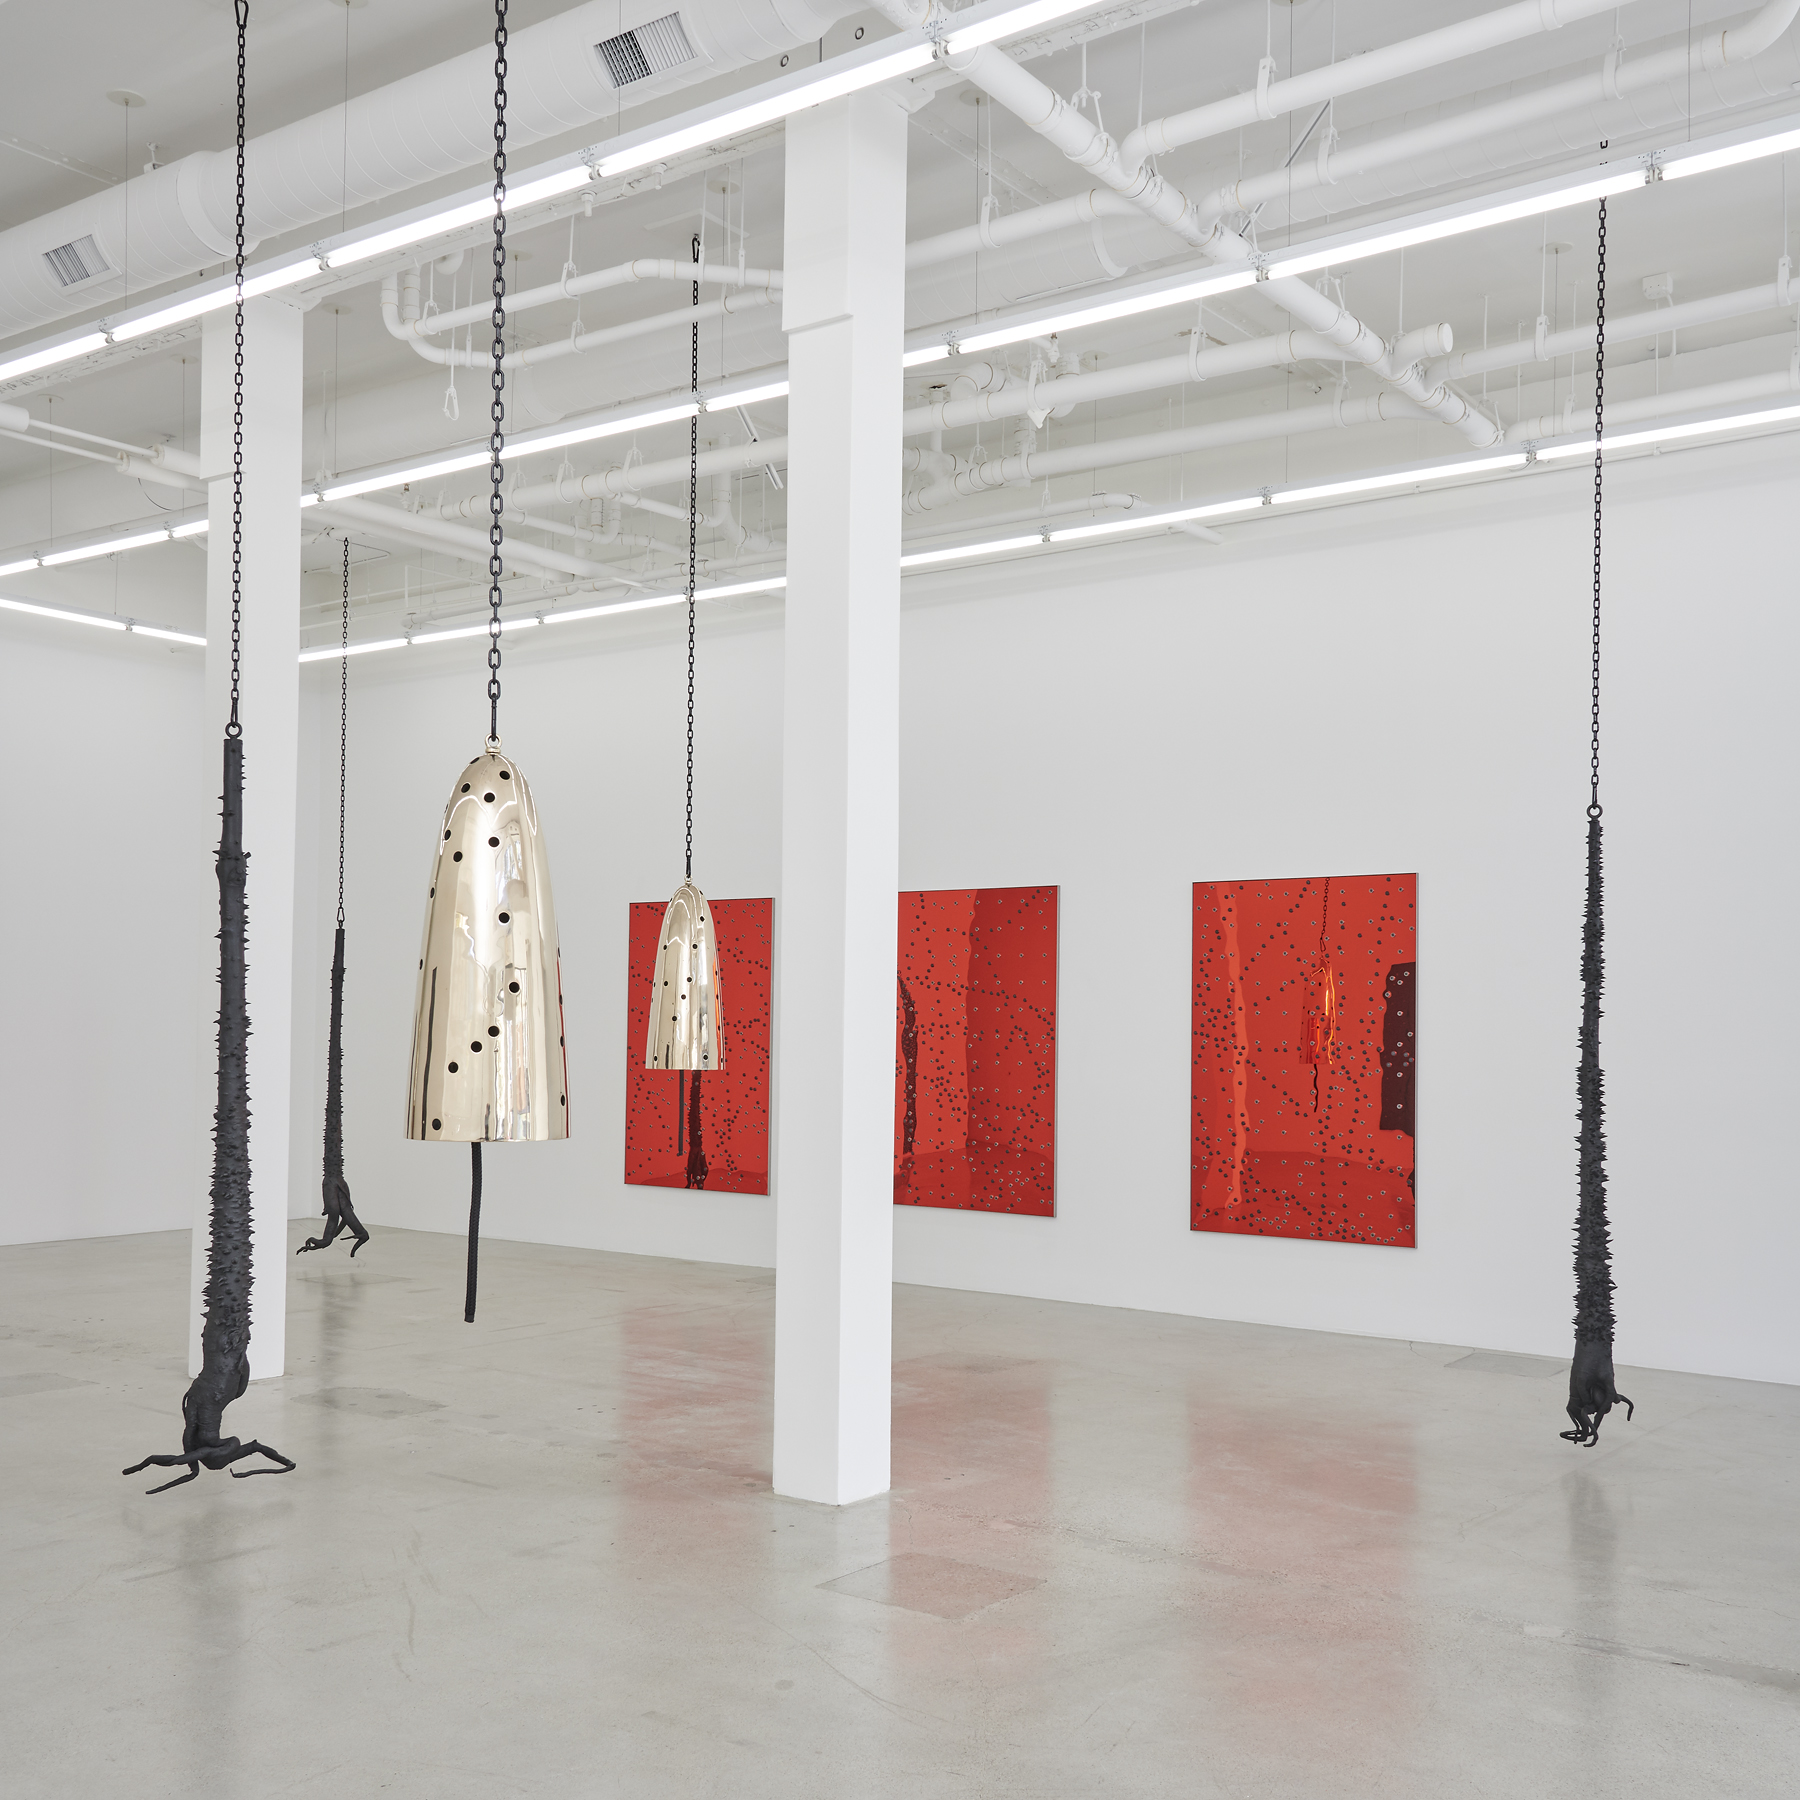 Semo_Precarious Hardware, 2019_Jessica Silverman Gallery_Installation view 02.jpg